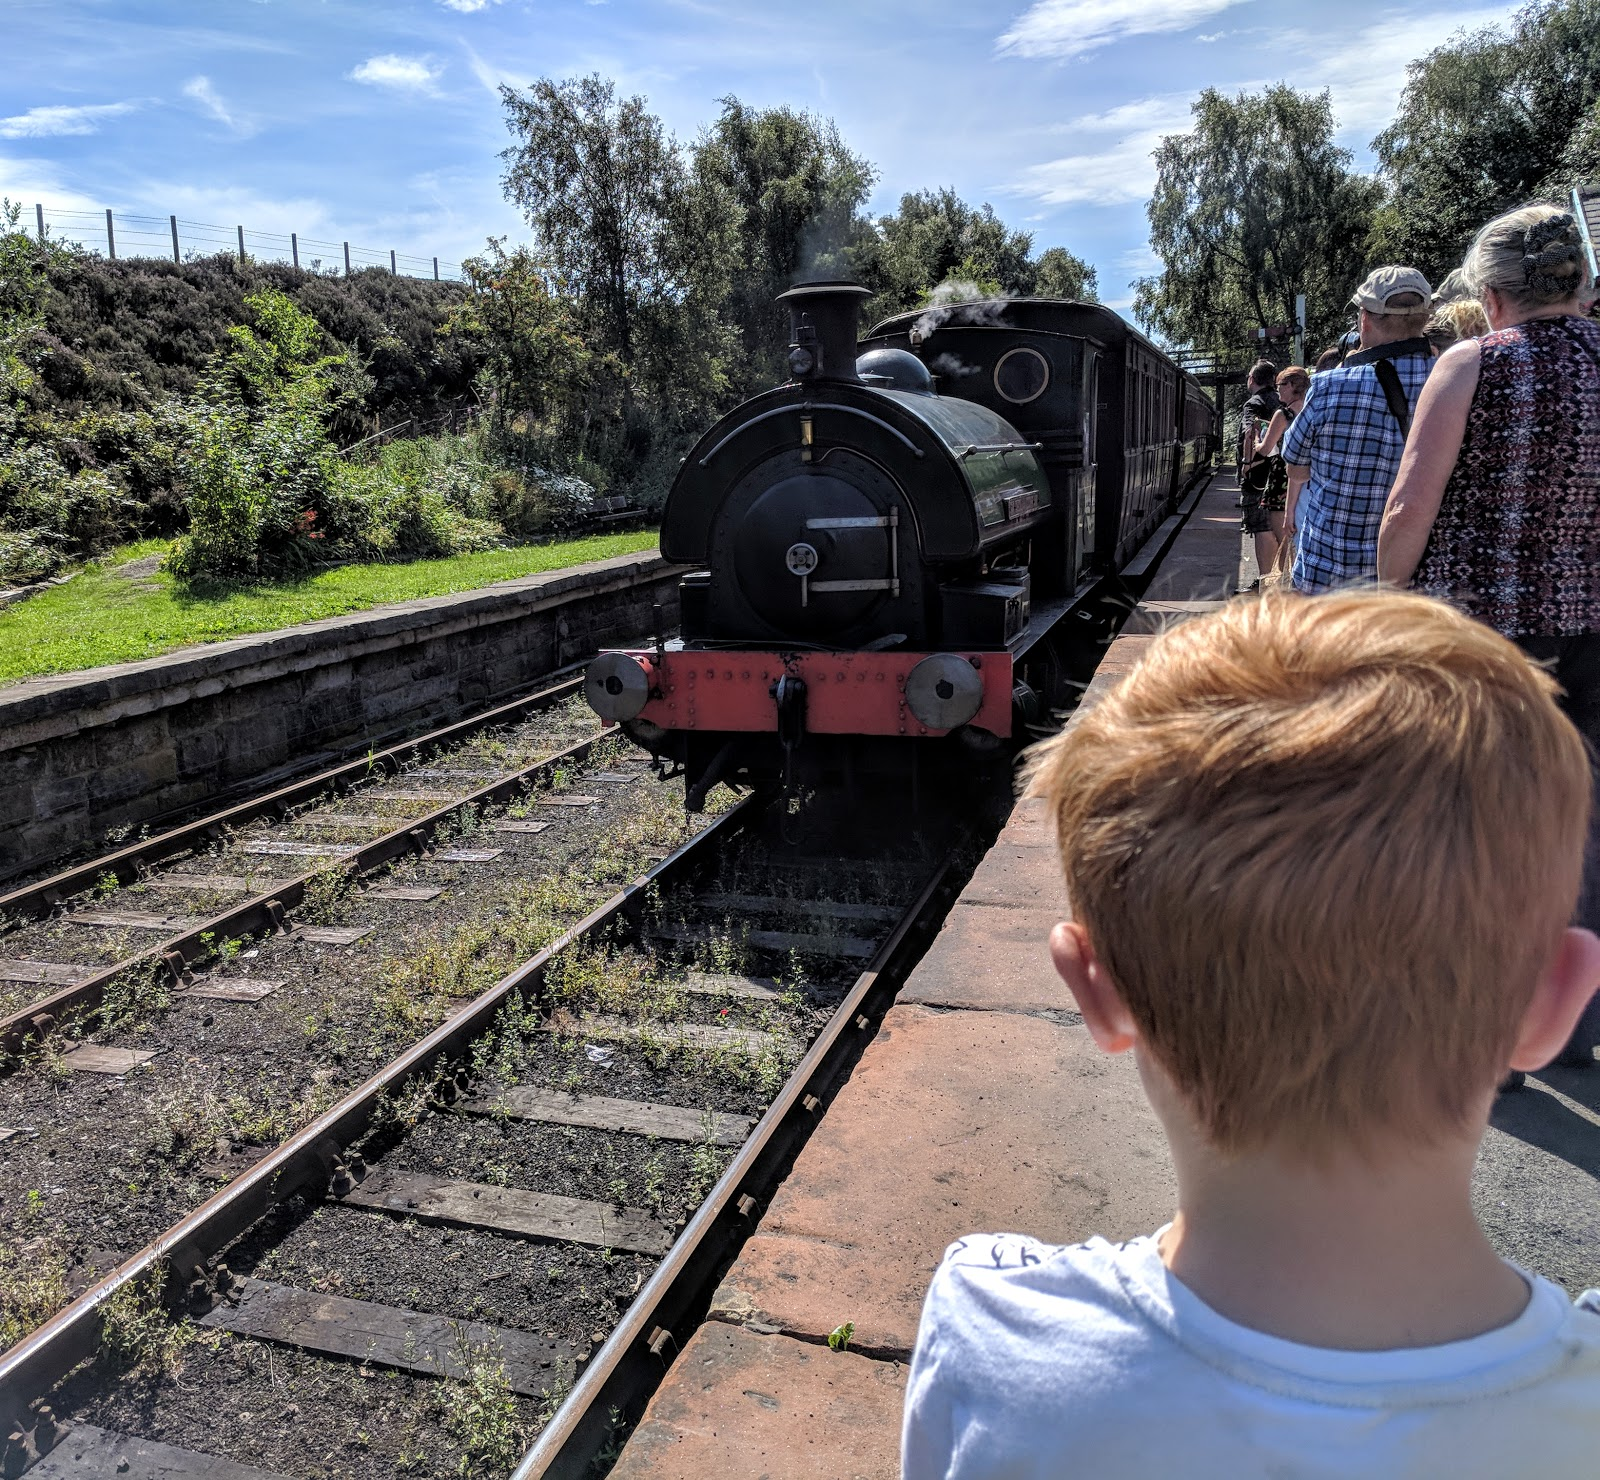 The Best Value Annual Passes for North East England  - tanfield railway